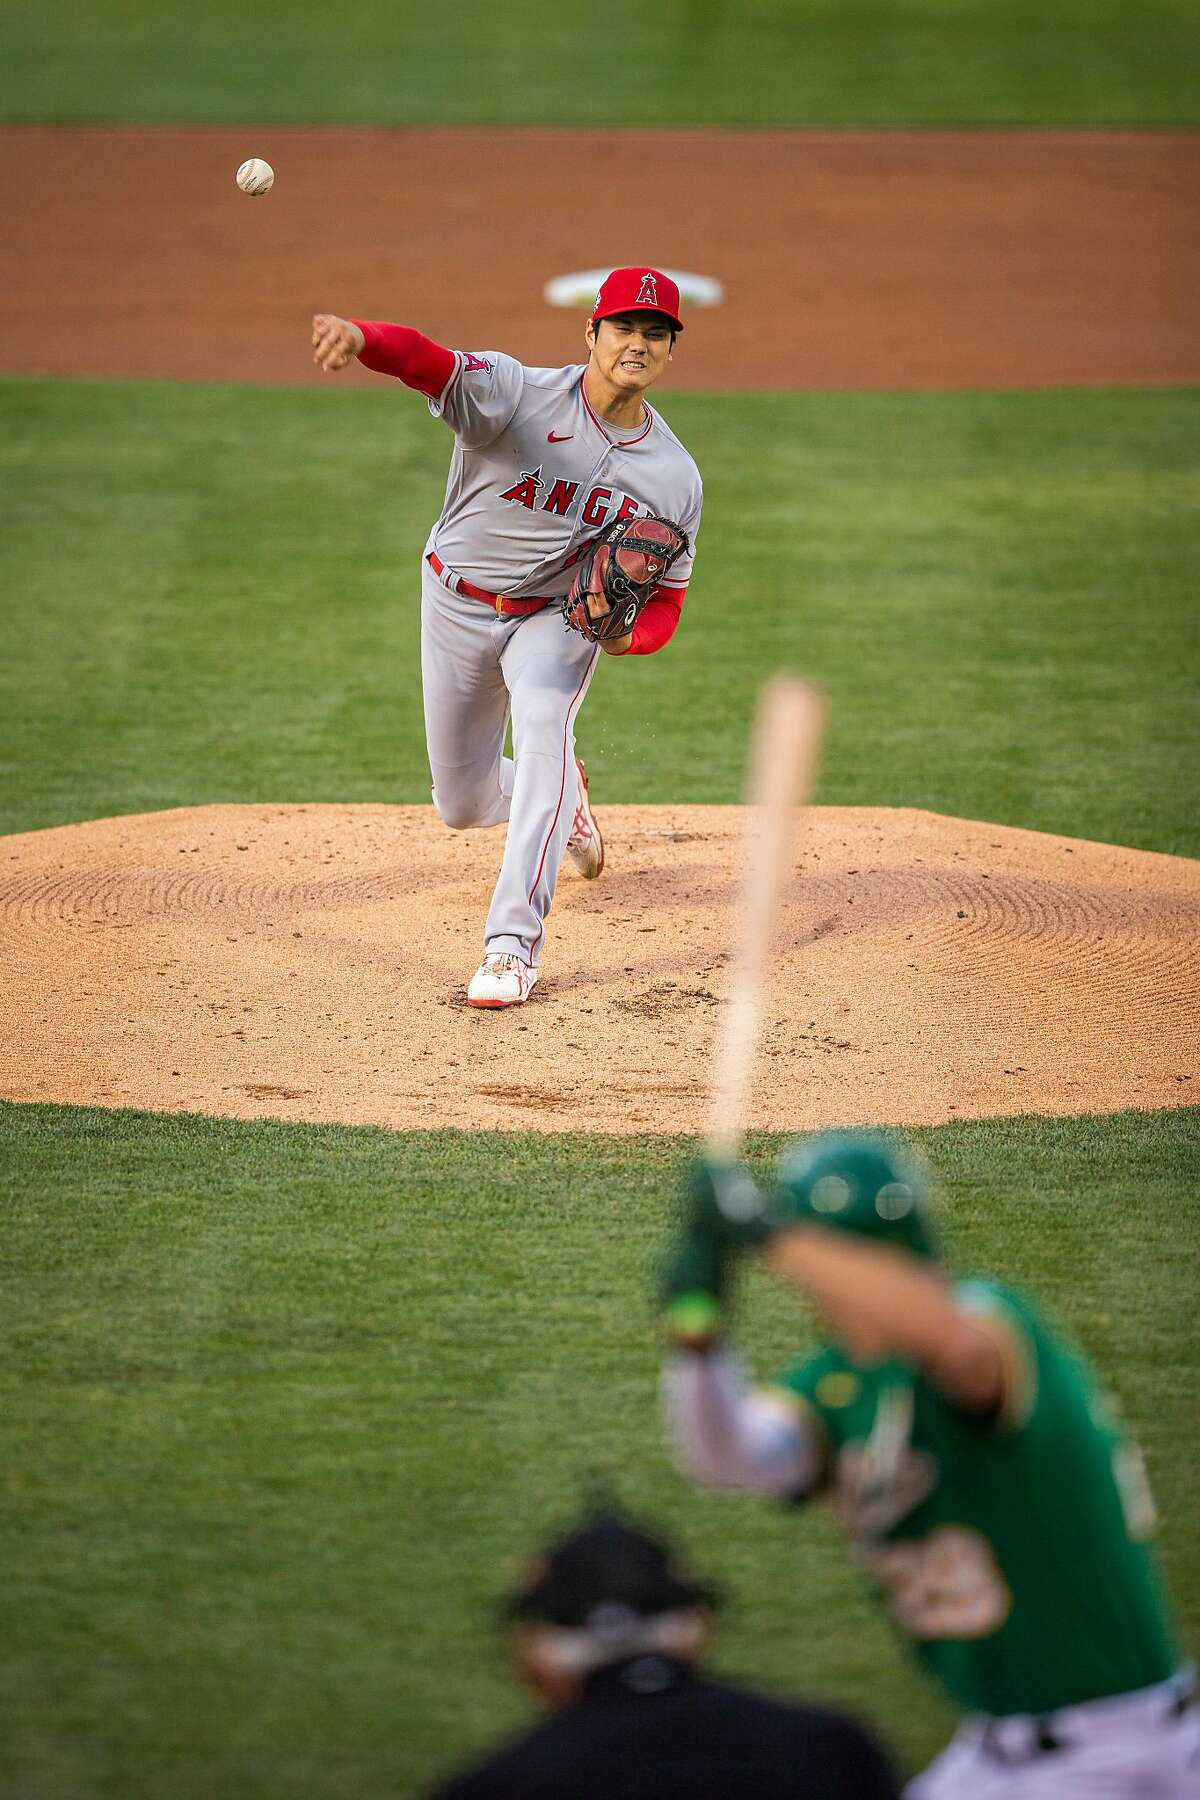 Angels starting pitcher Shohei Ohtani, who wasn't in the batting order, made it to the seventh inning.